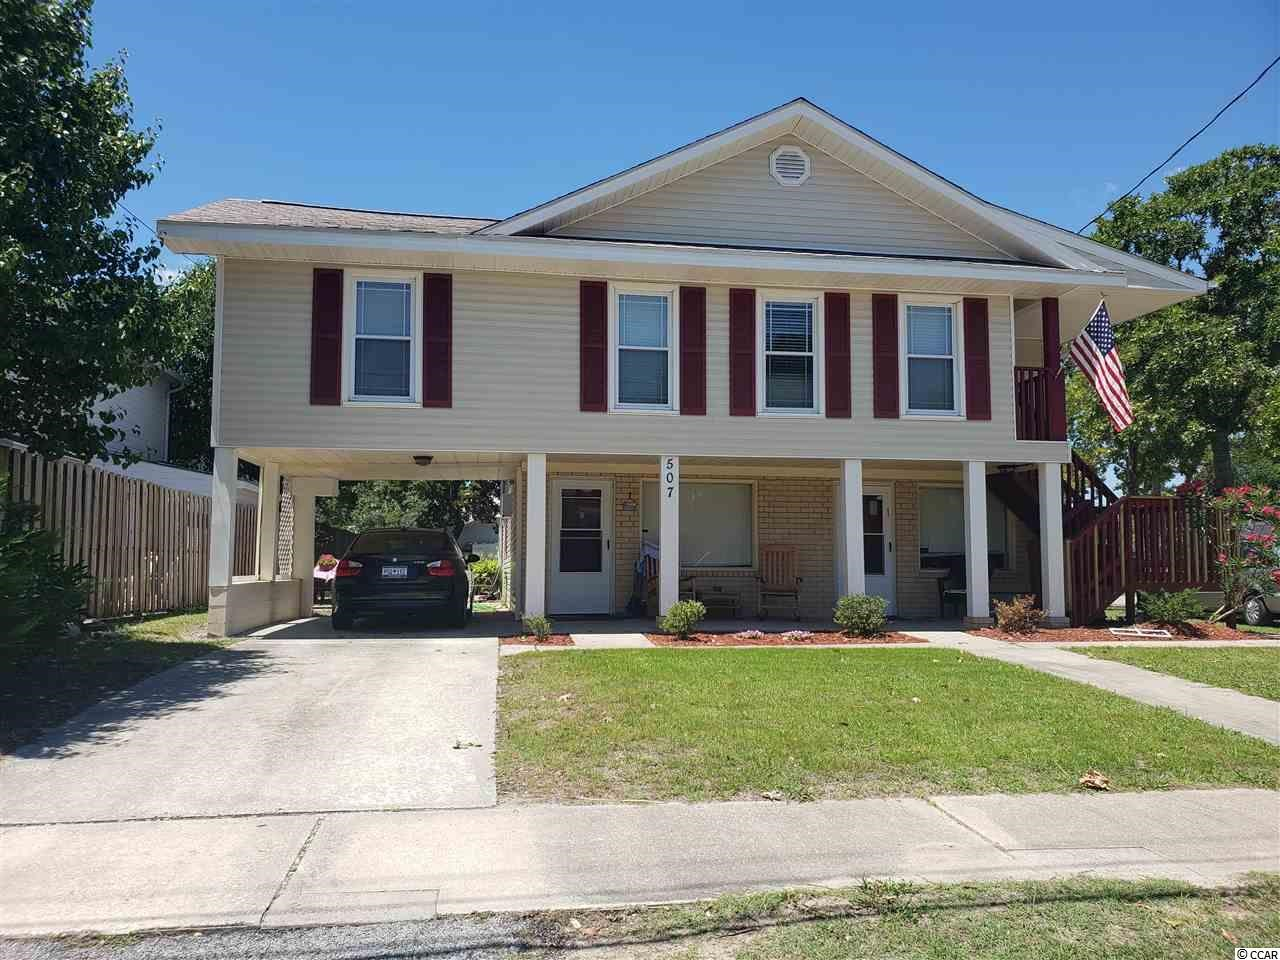 507 17th Ave. S, North Myrtle Beach